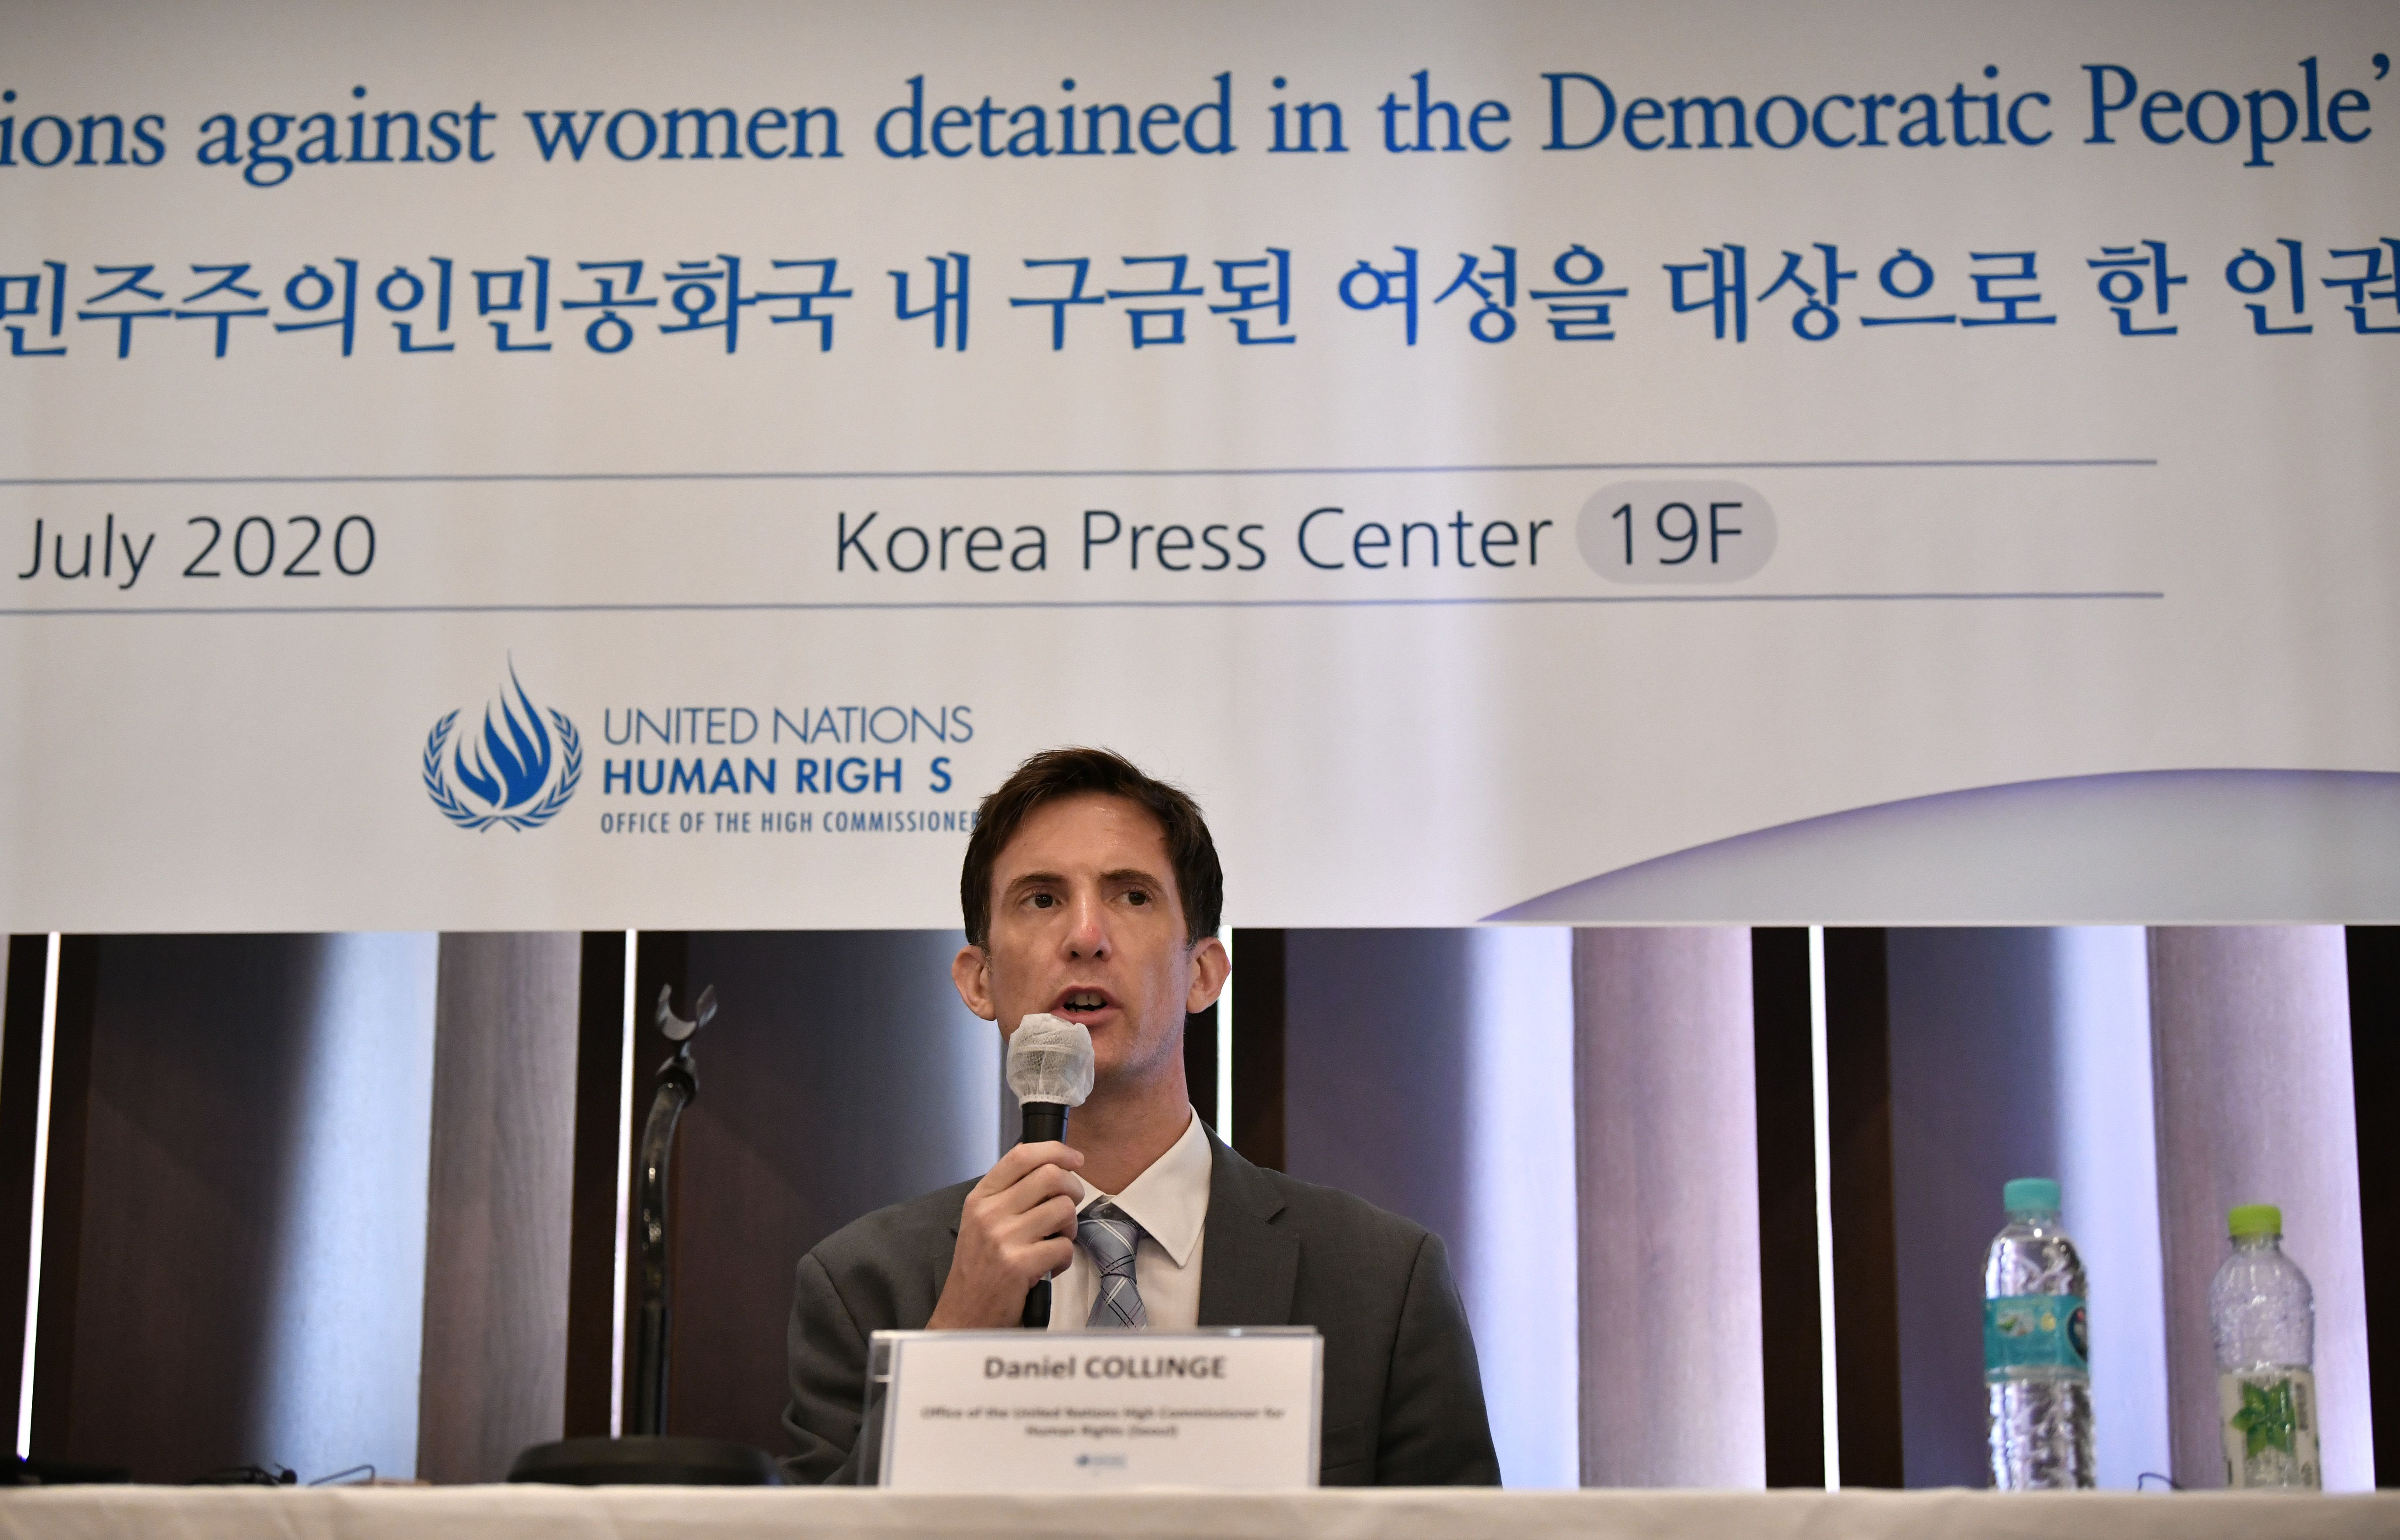 UN Human Rights officer Daniel Collinge speaks during a press conference on the UN report I still feel the pain: Human rights violations against women detained in the Democratic Peoples Republic of Korea, in Seoul on July 28, 2020. - (Photo by JUNG YEON-JE/AFP via Getty Images)